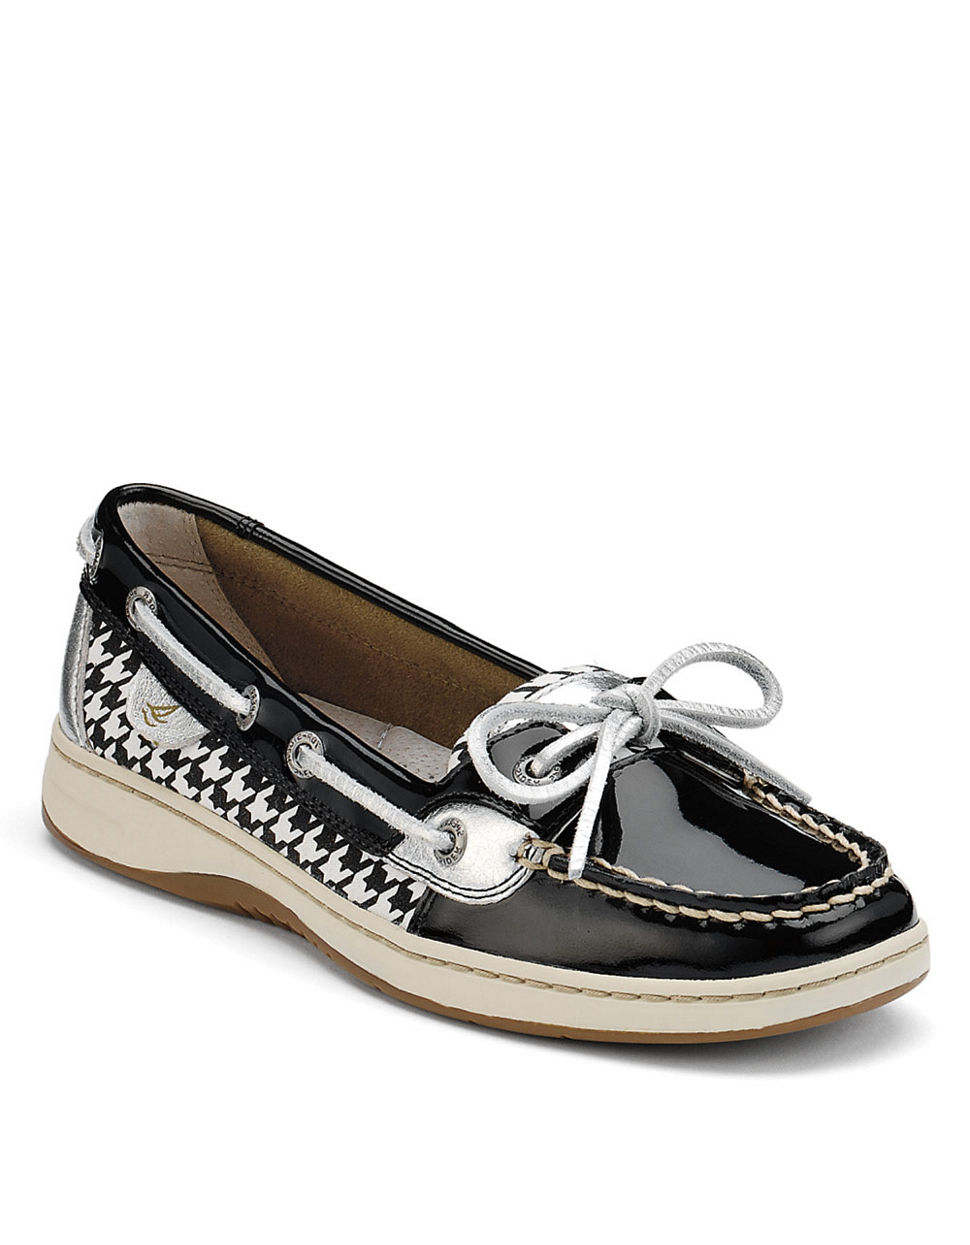 bbf7359d0af Sperry Top-Sider Angelfish Patent Leather Boat Shoes in Black - Lyst